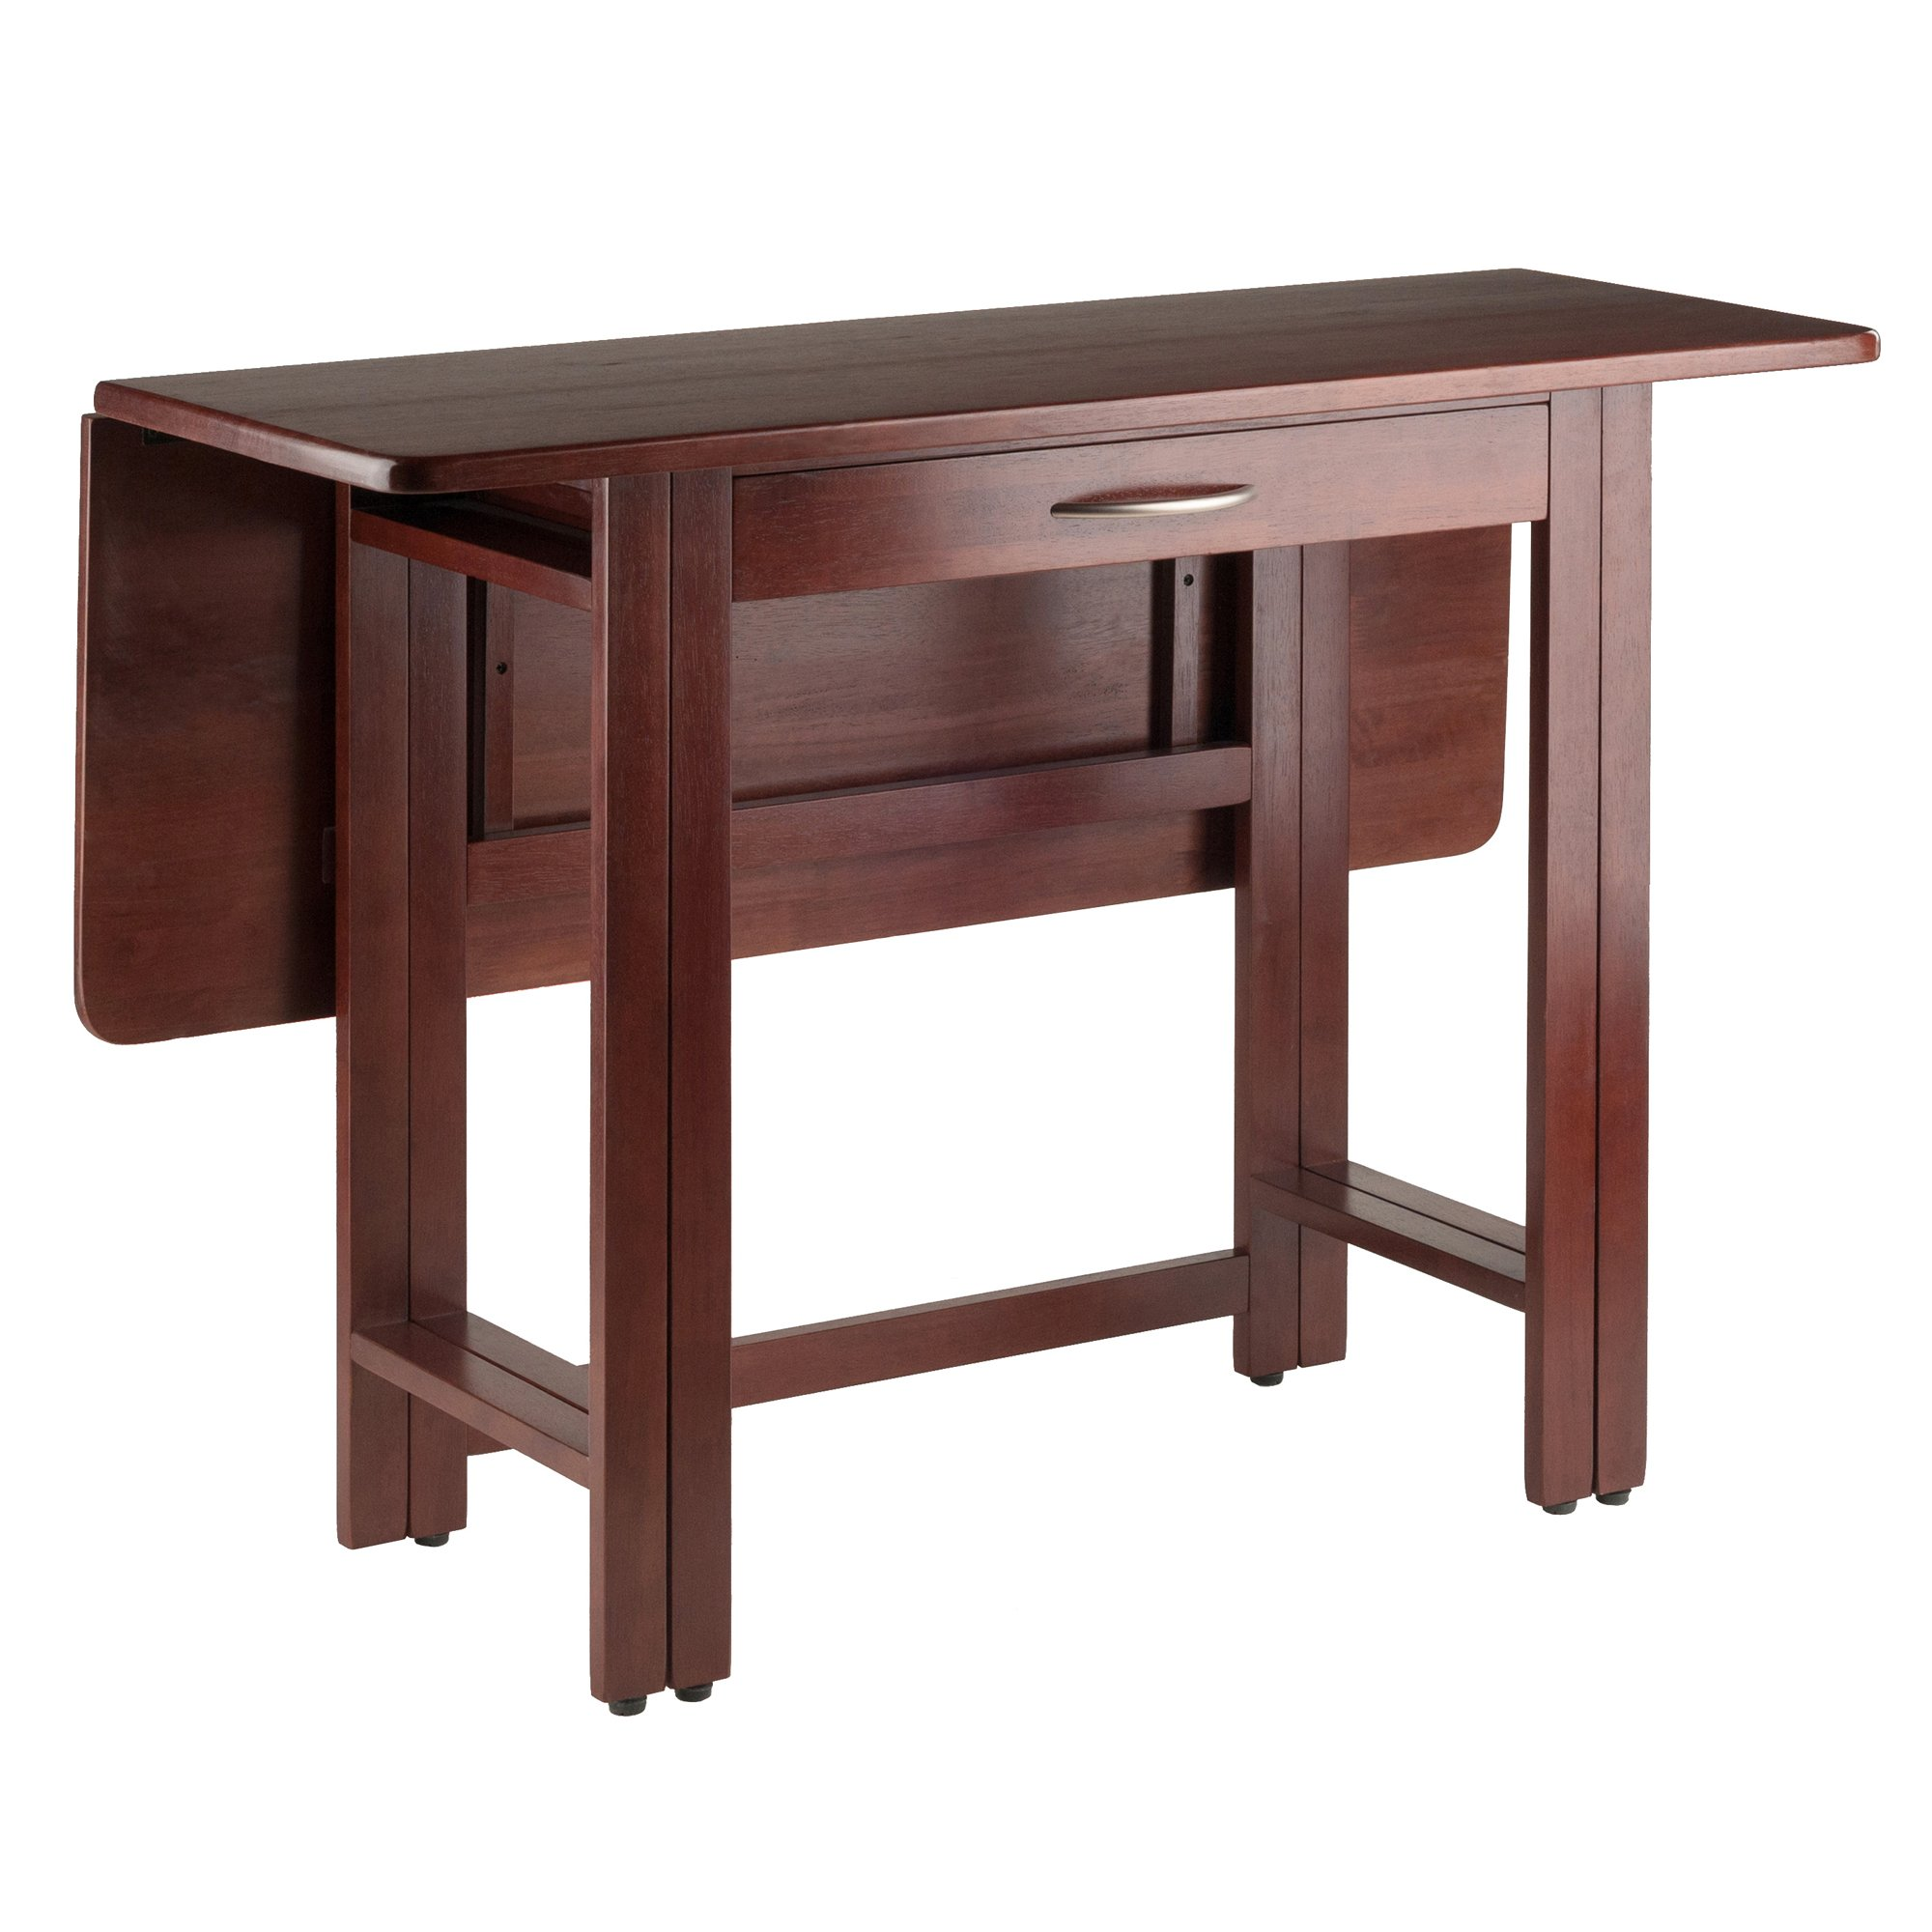 Winsome Wood 94145-WW Taylor Dining, Walnut by Winsome Wood